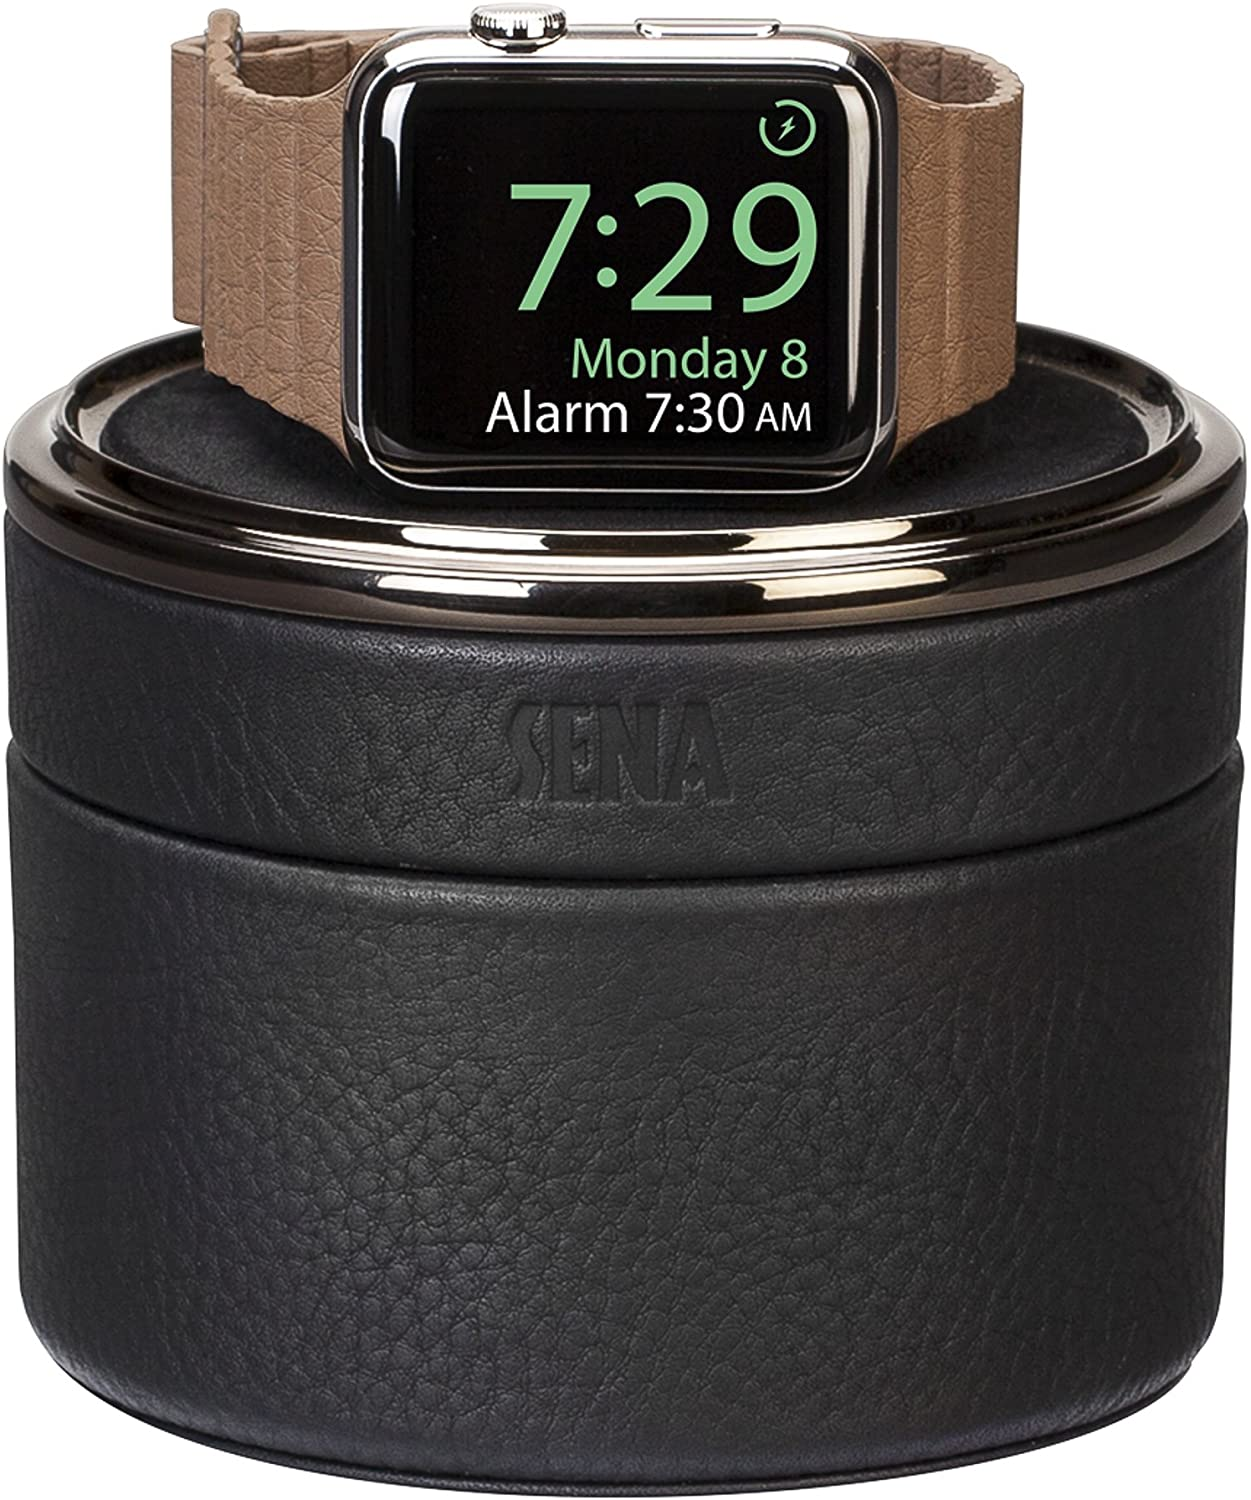 A Charging Case for the Apple Watch